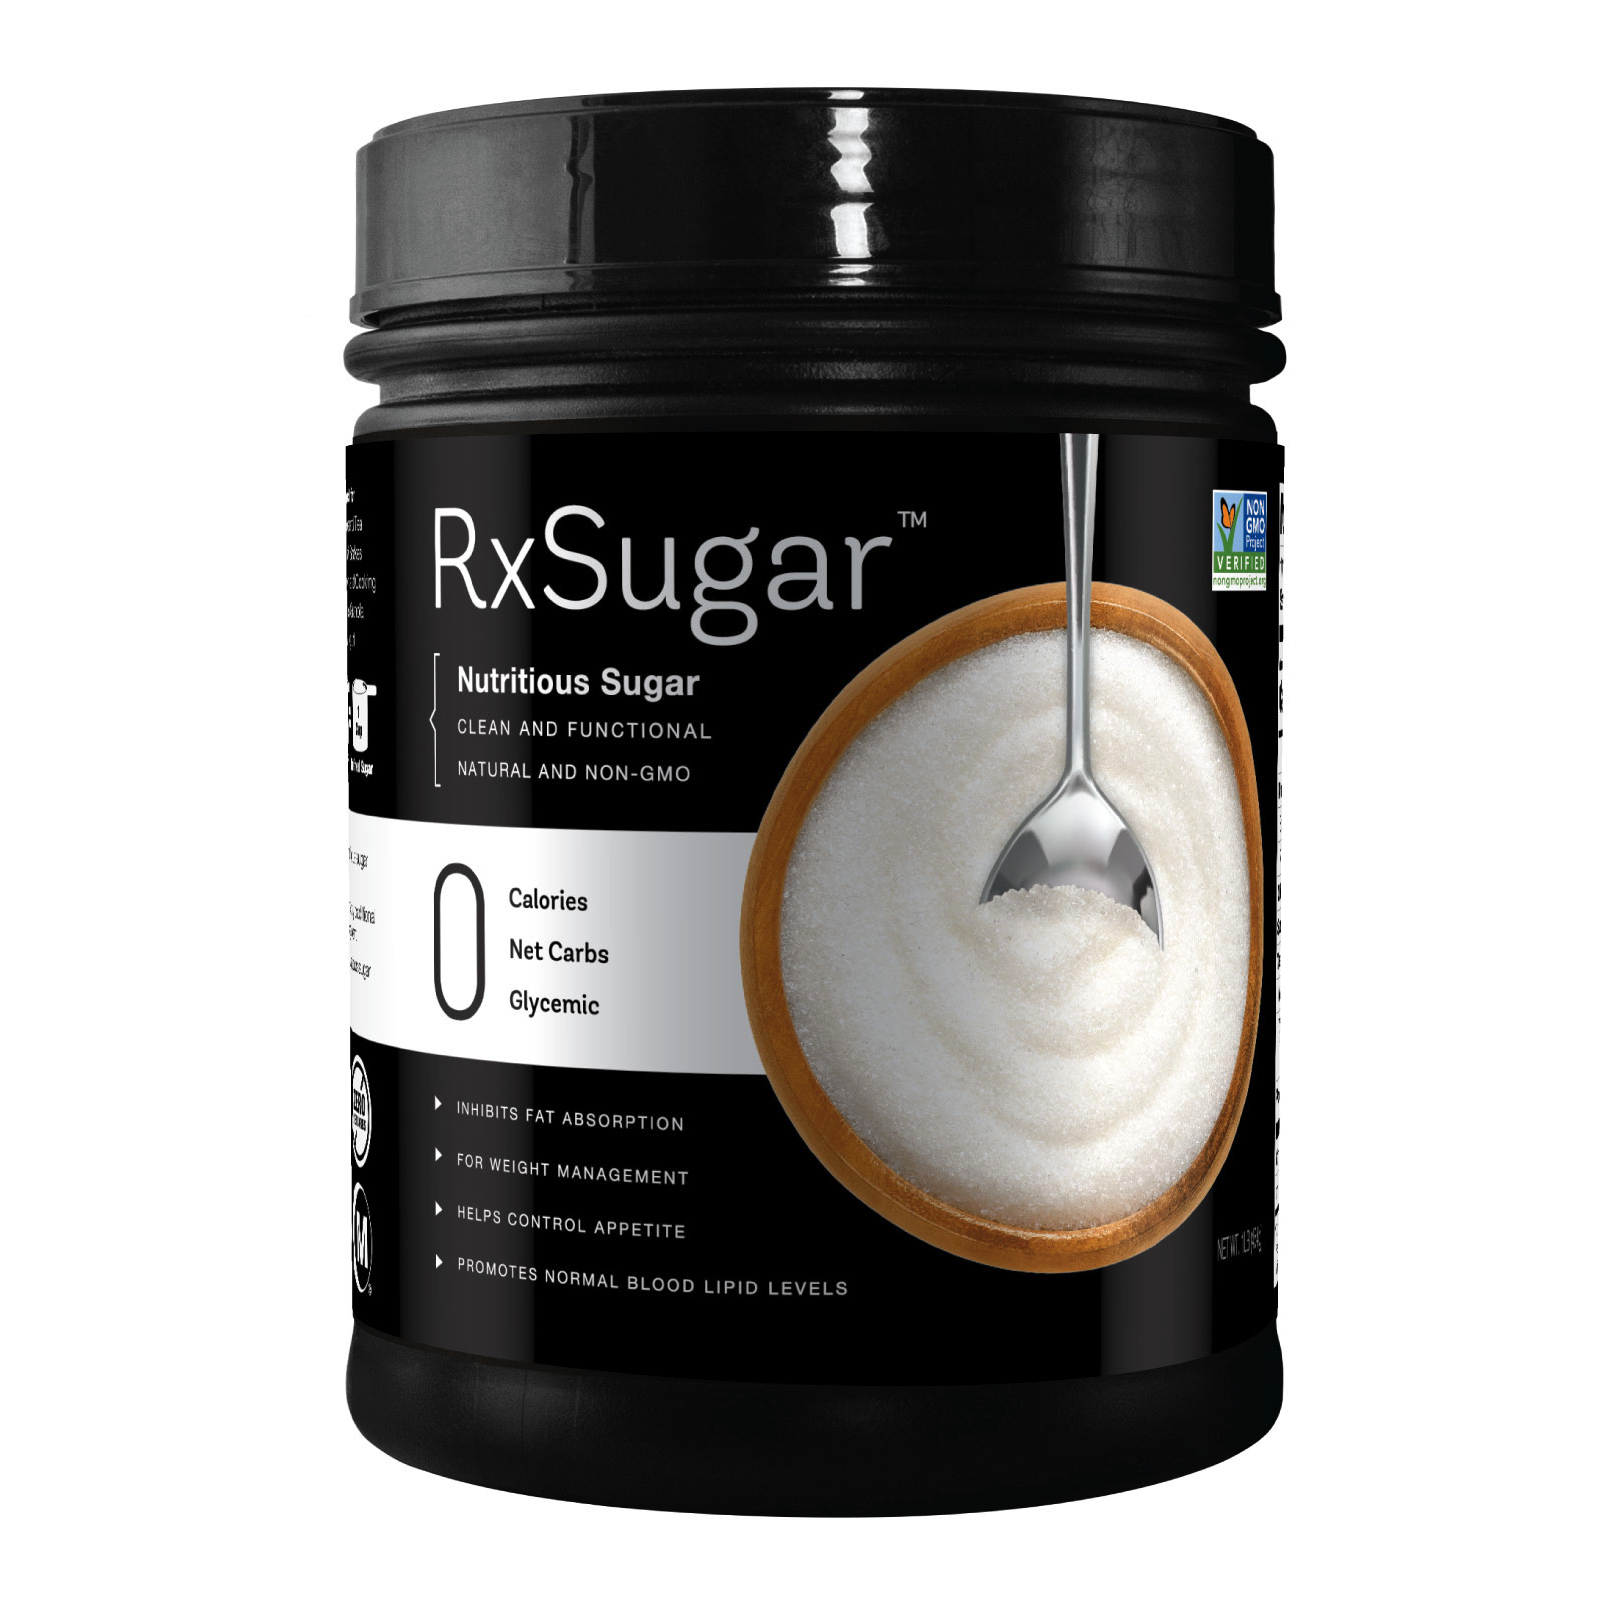 RxSugar - Keto Certified by the Paleo Foundation